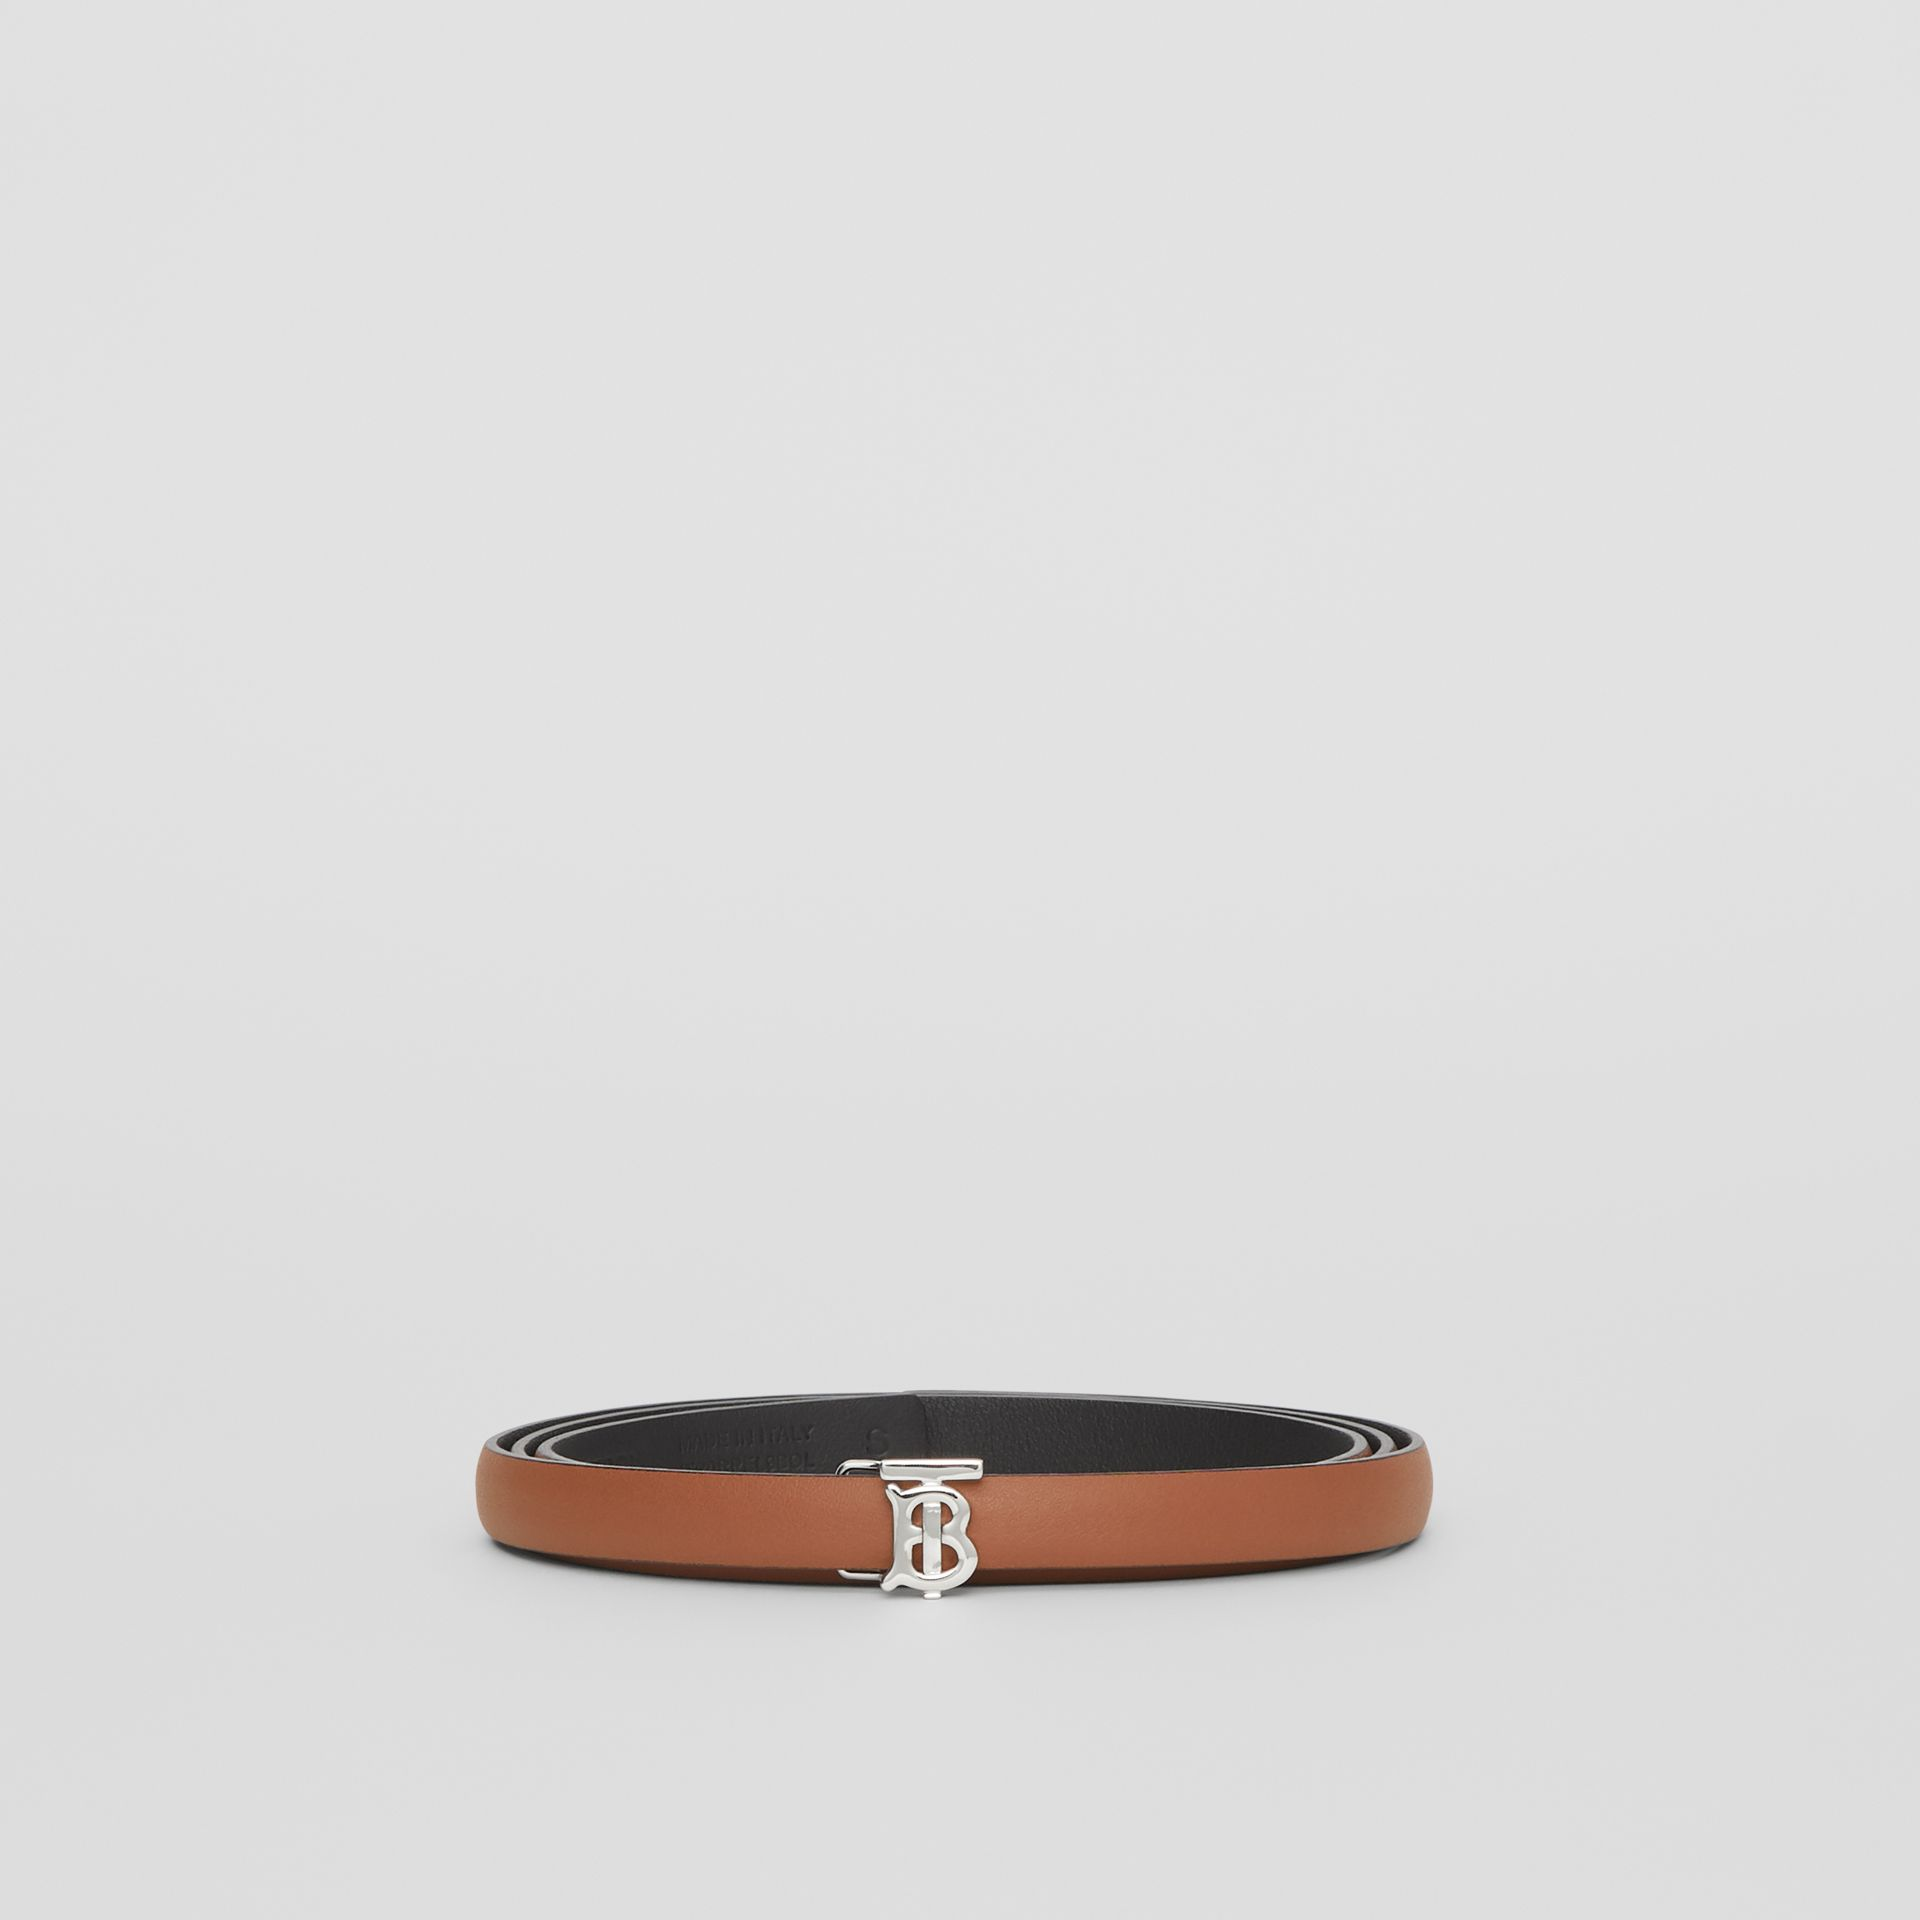 Reversible Monogram Motif Leather Wrap Belt in Malt Brown/black - Women | Burberry Australia - gallery image 3